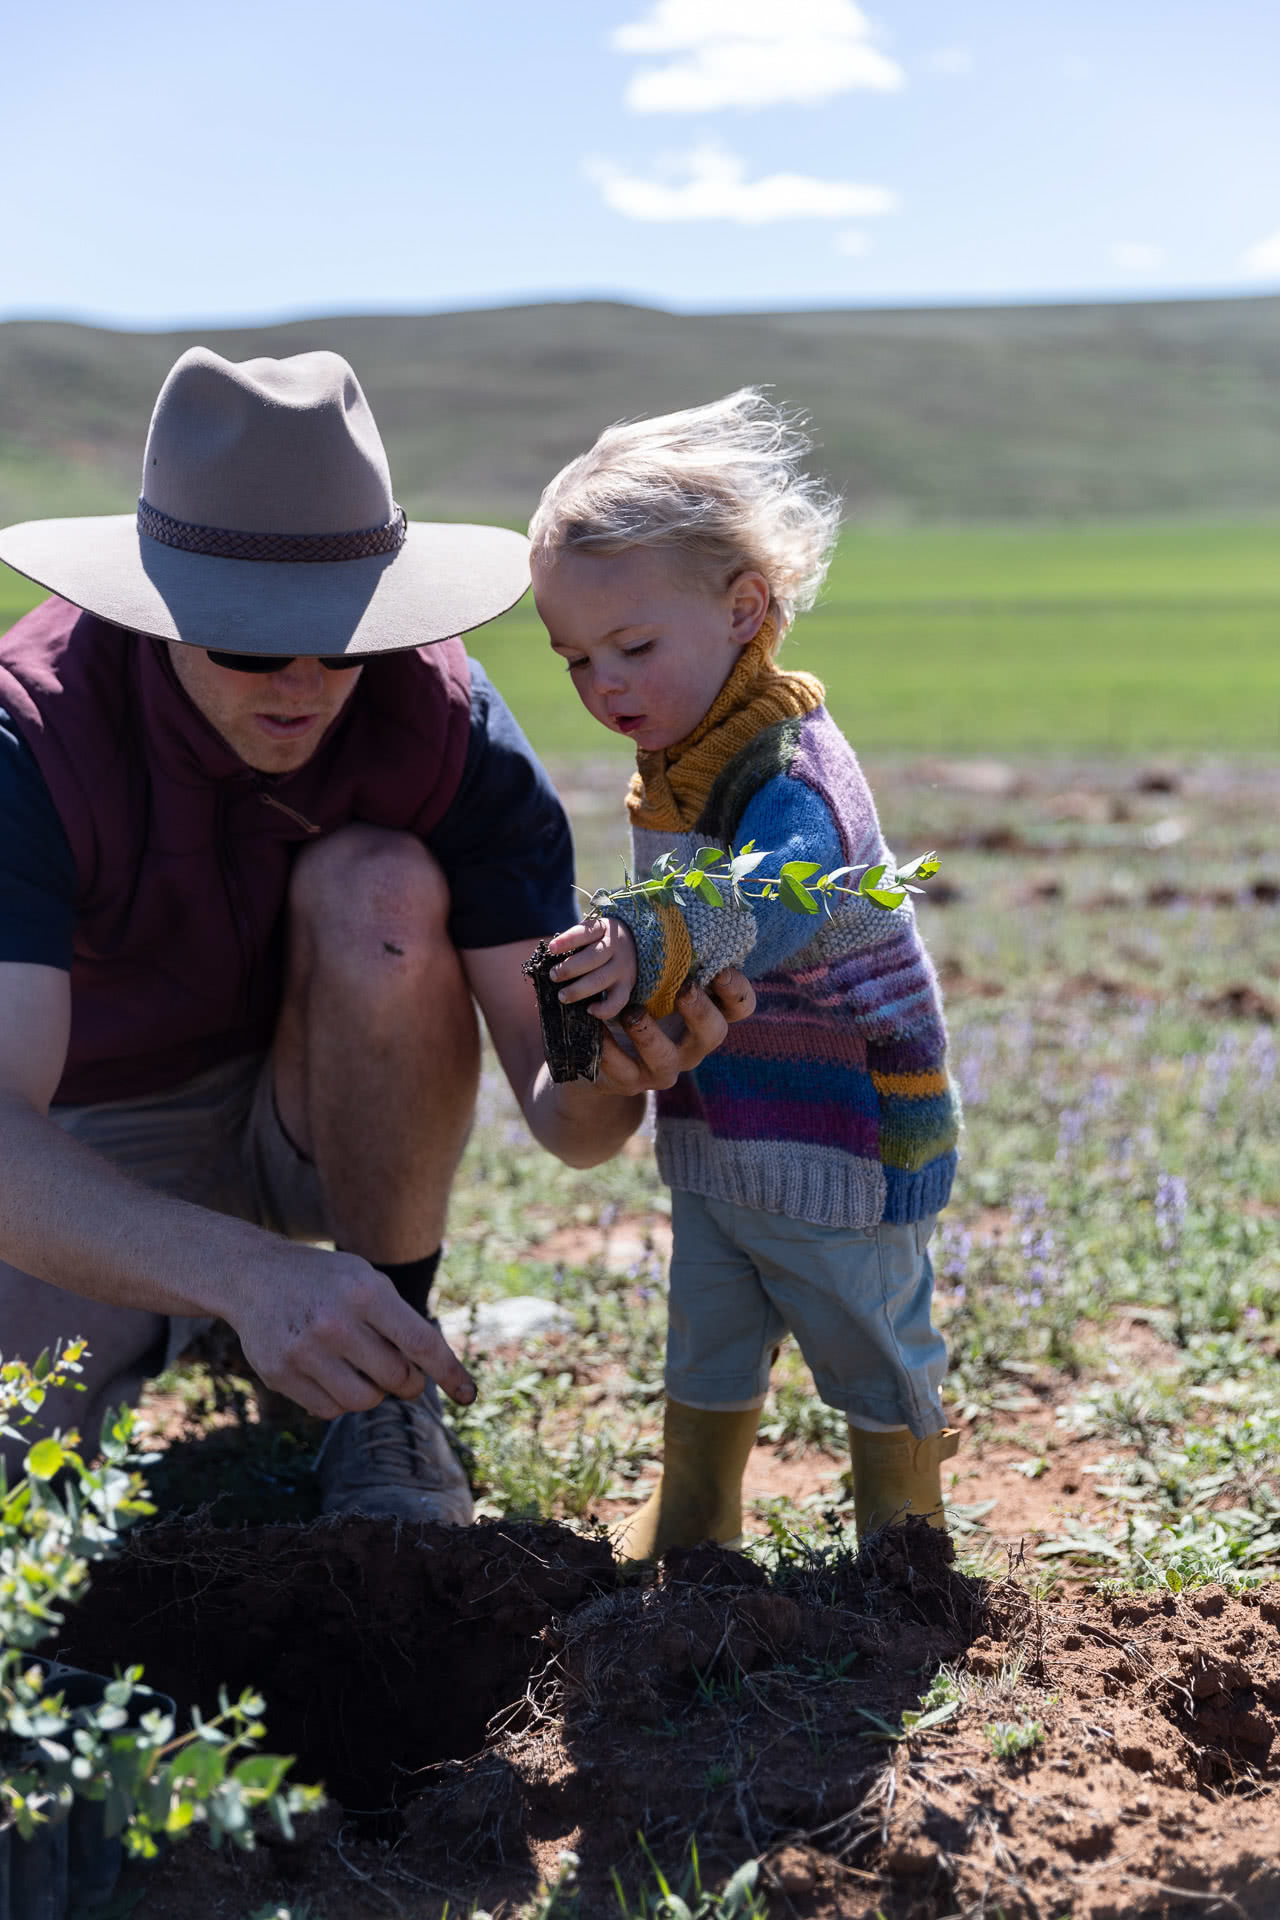 rewild the snowies, keep it cool, campaign imagery, what happens when you plant a tree?, snowy mountains, nsw, baby